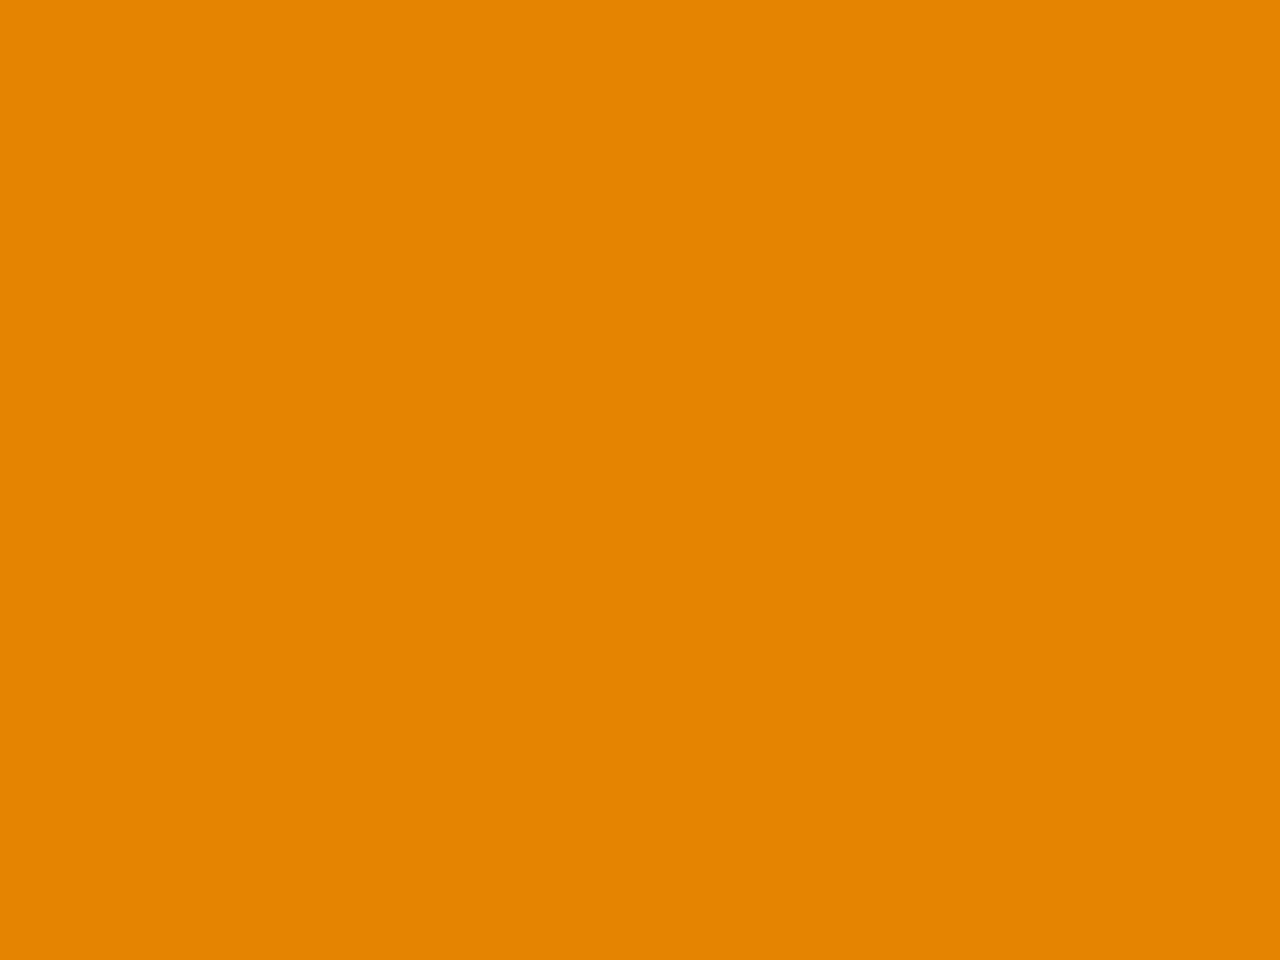 1280x960 Fulvous Solid Color Background